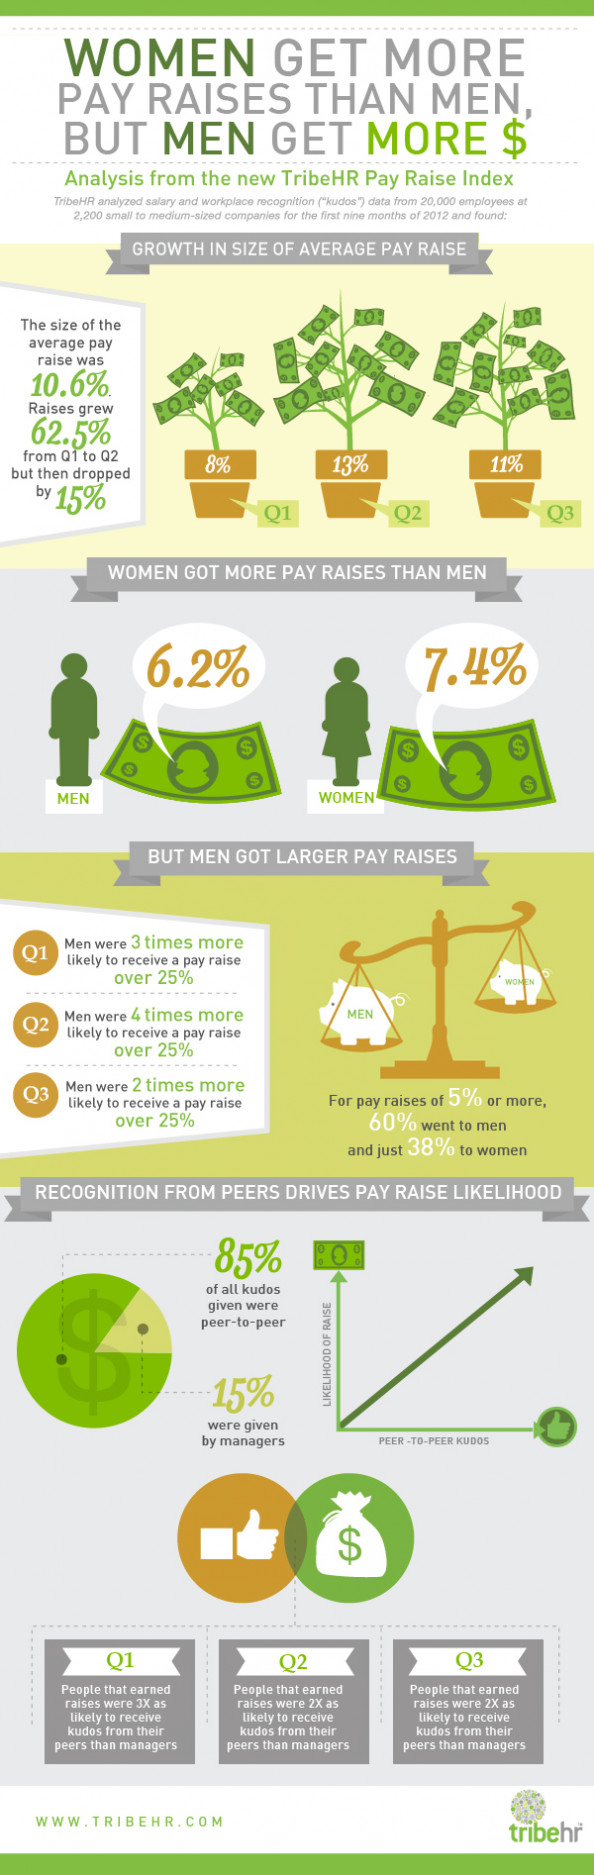 TribeHR Pay Raise Infographic